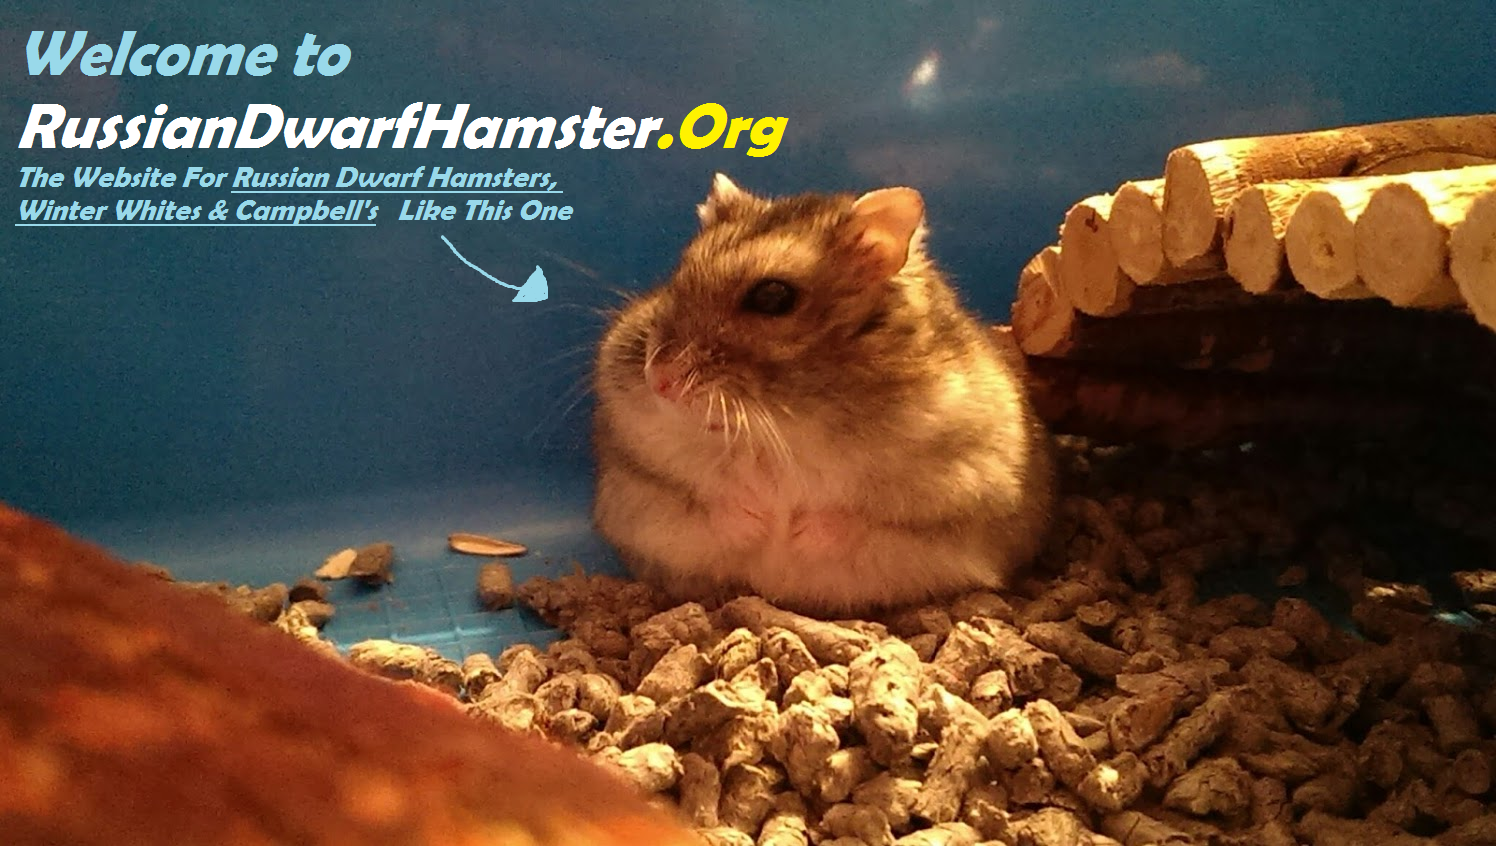 can russian dwarf hamsters live together?